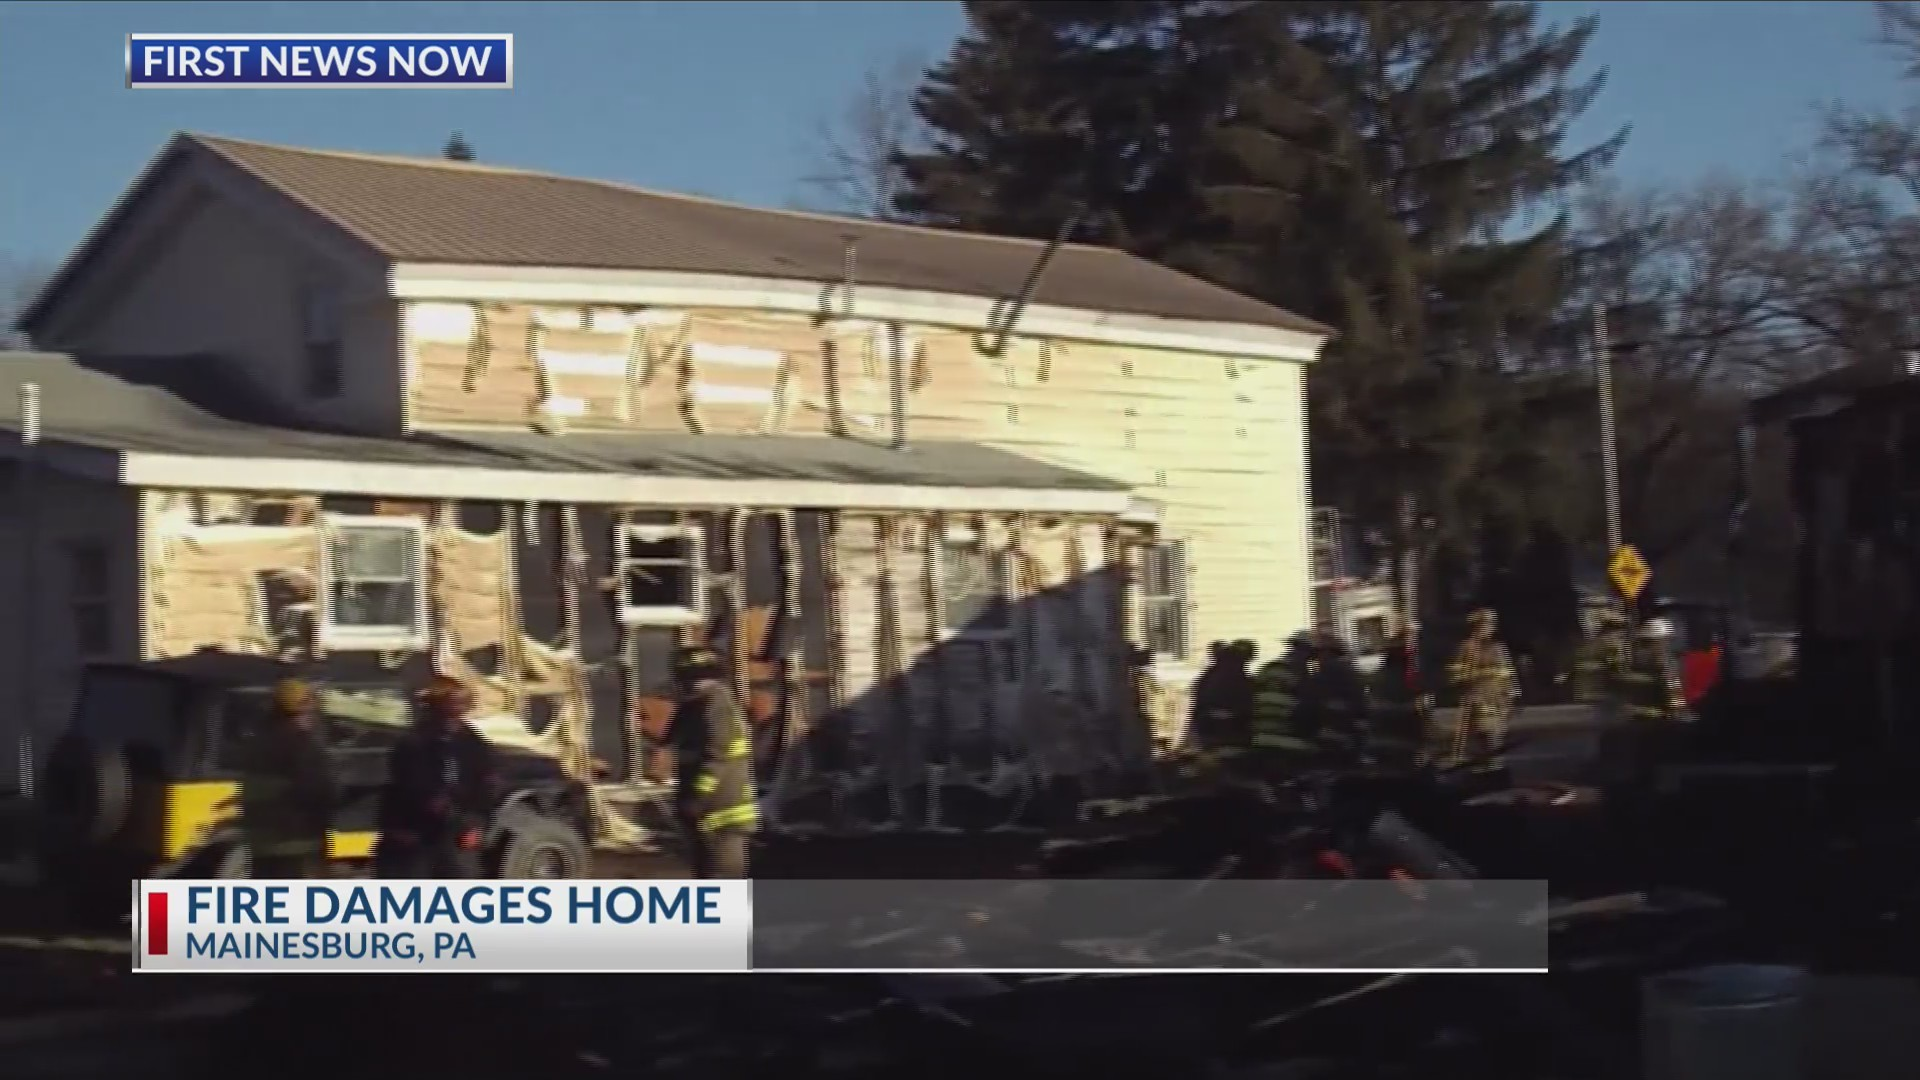 Fire damages Mainesburg home